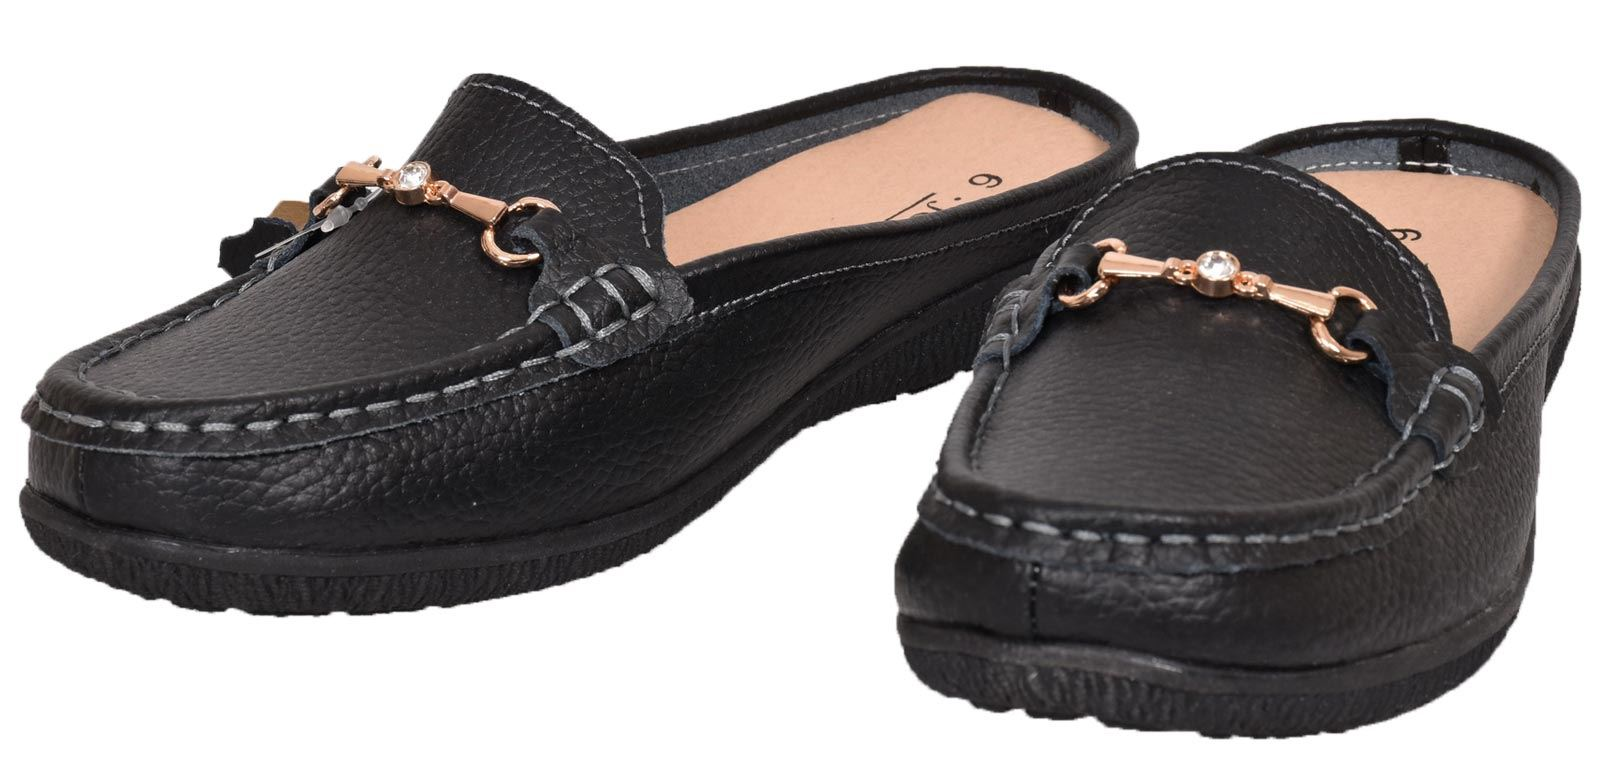 Ladies-Leather-Loafer-Mules-Comfort-Shoes-Womens-Slider-Moccasins-Shoes thumbnail 19